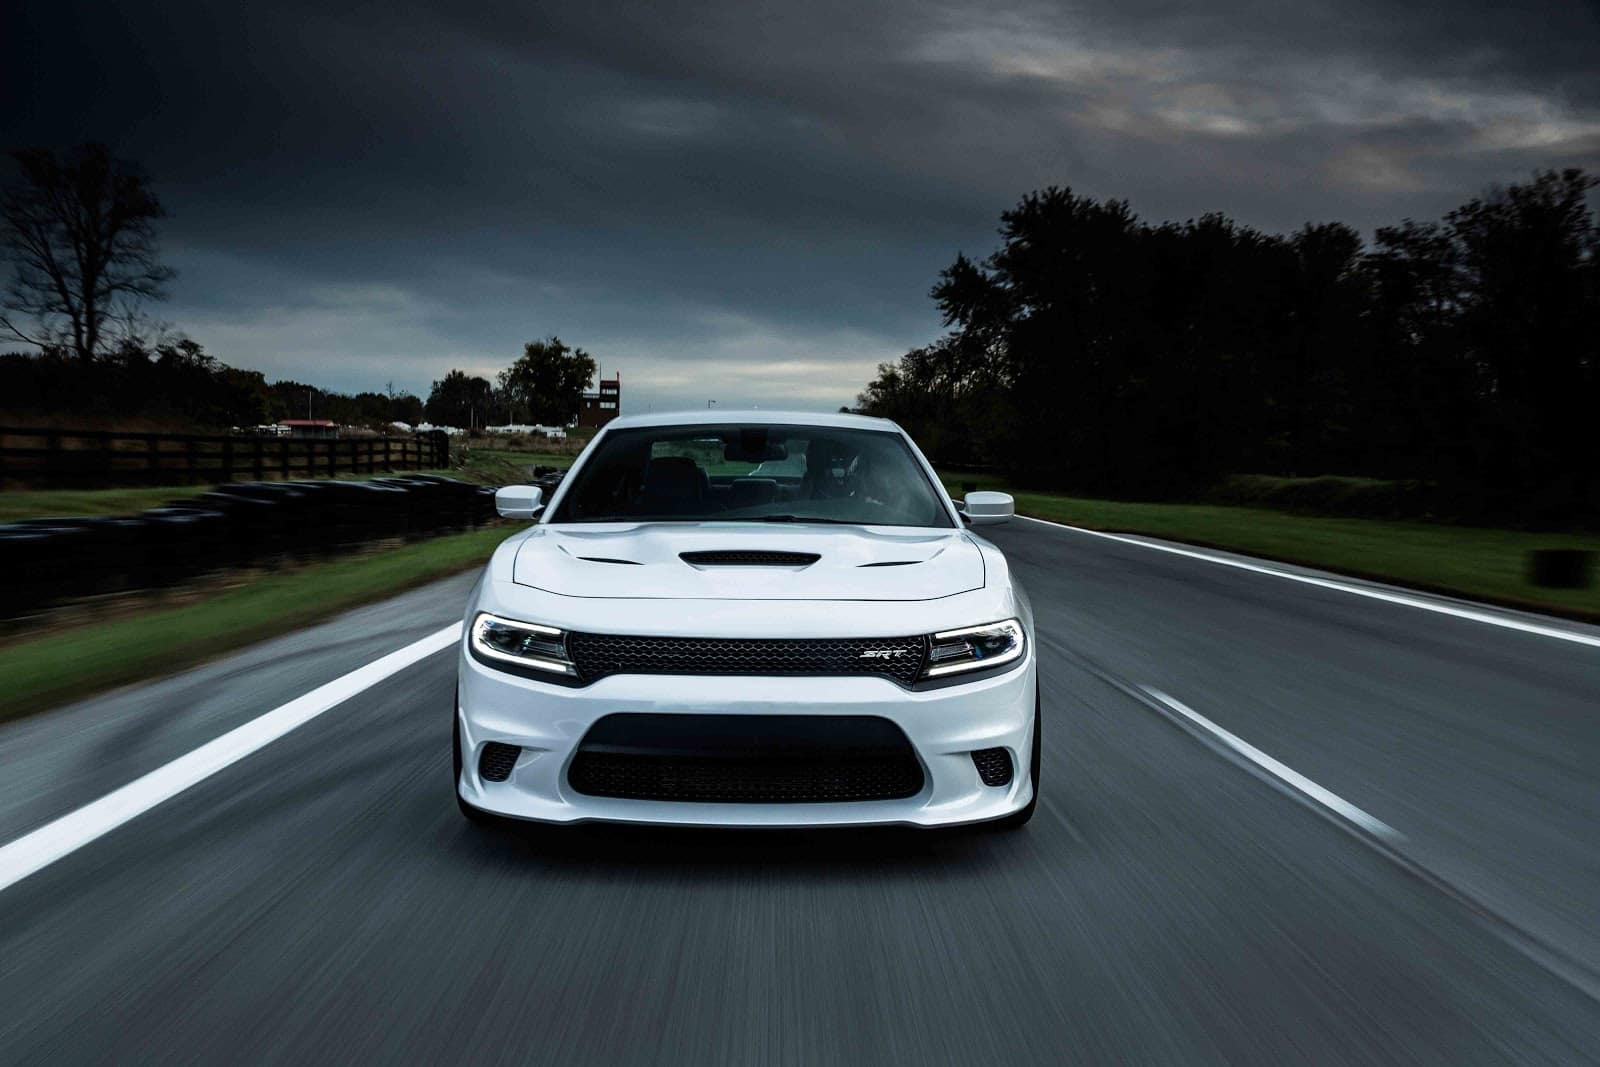 White 2019 Dodge Charger SRT driving down highway with storm clouds above and fields on either side of road